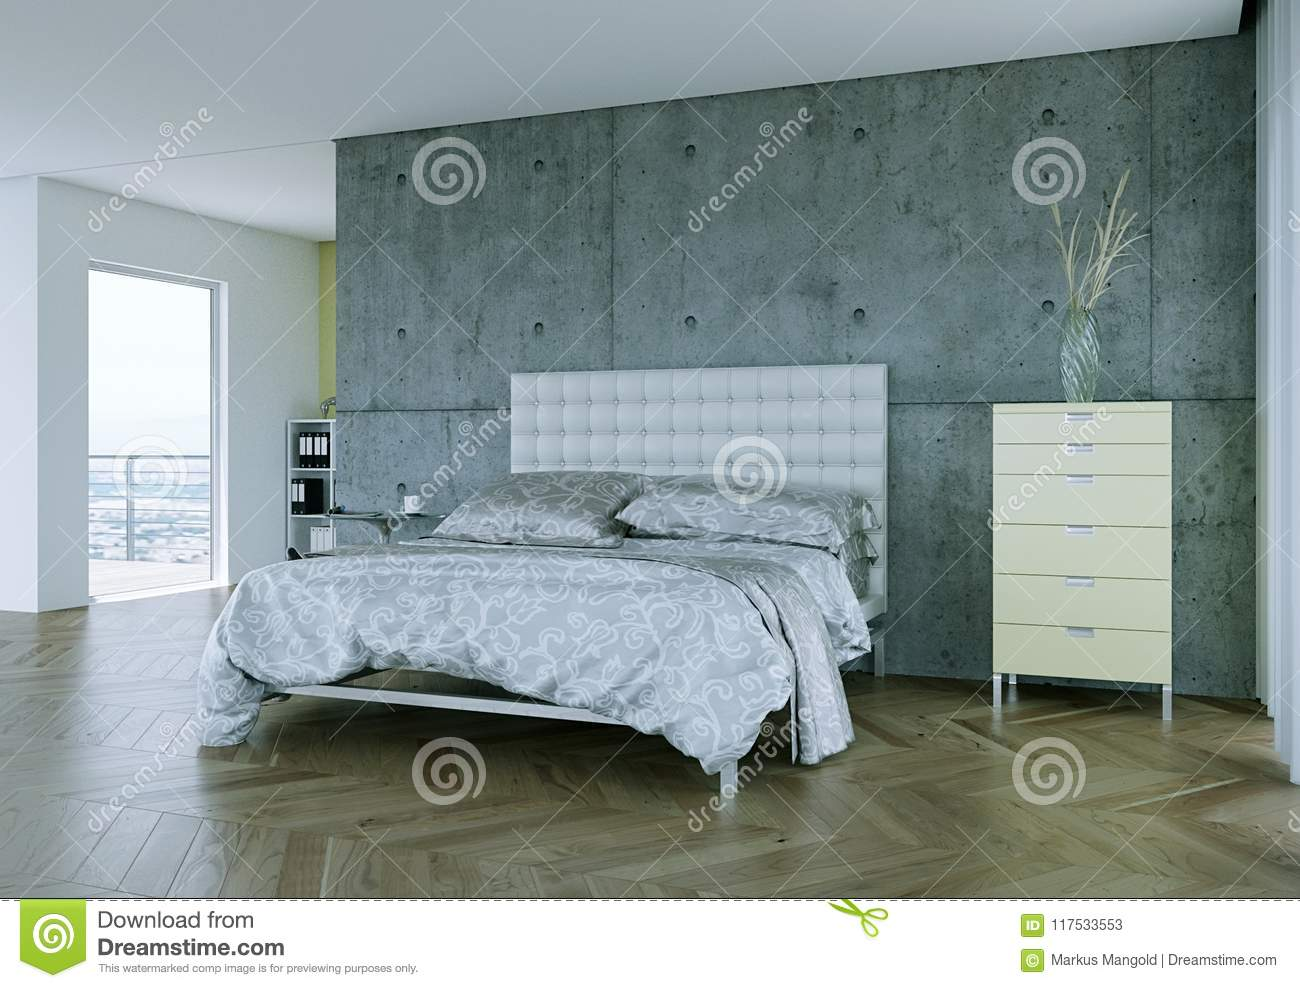 Modern bedroom with king size bed and modern decor stock